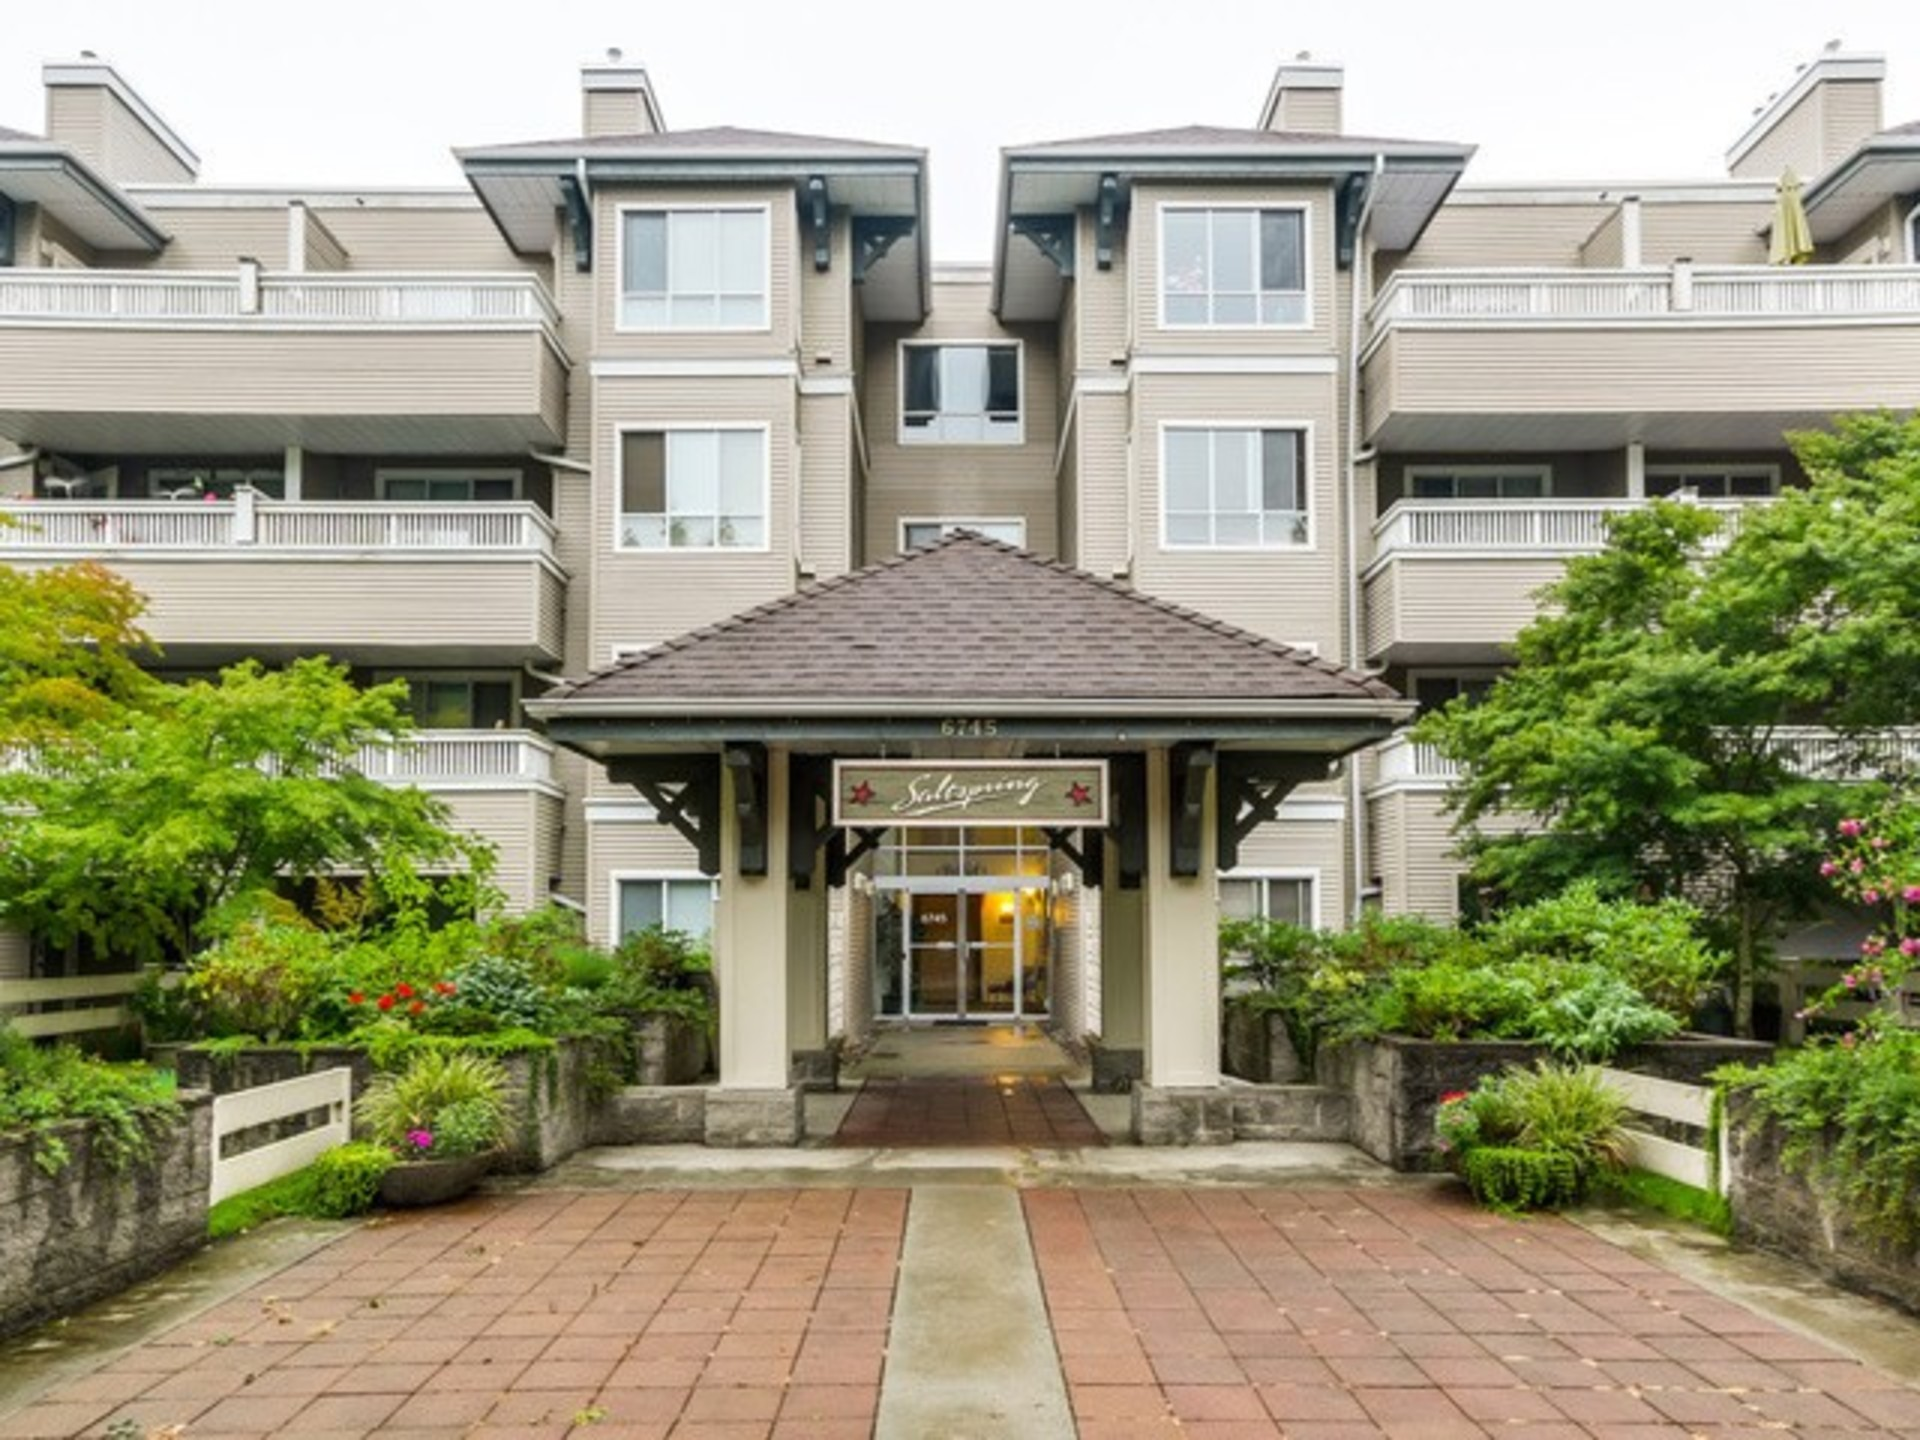 411 - 6745 Station Ct, South Slope, Burnaby South